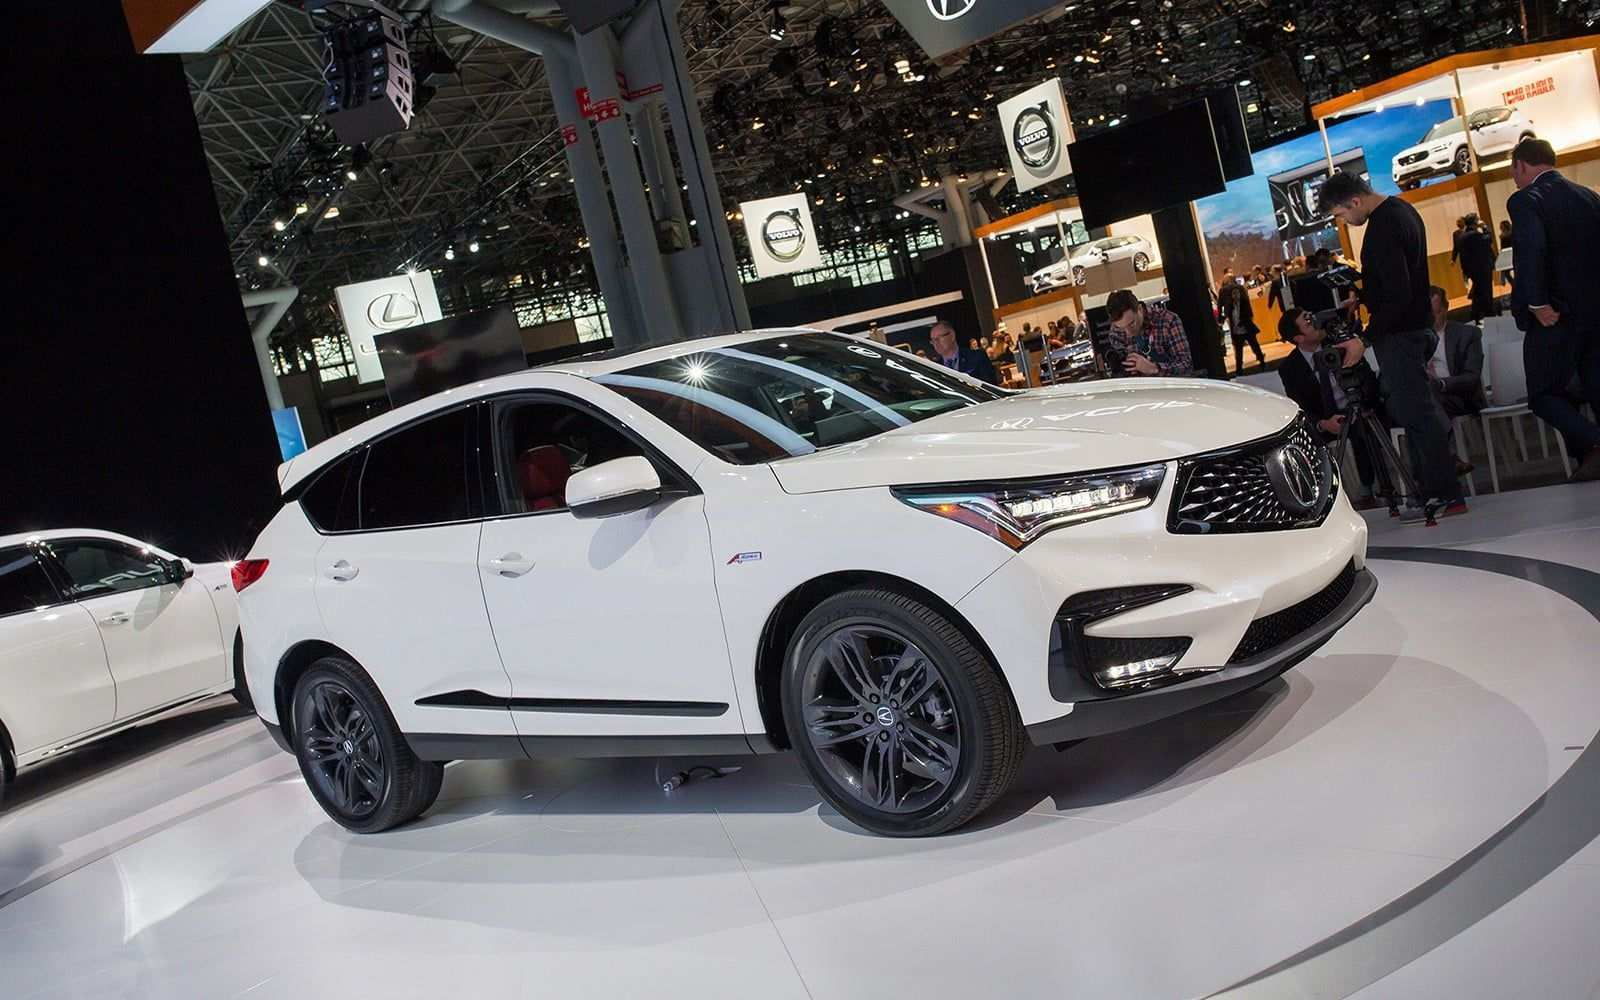 28 All New Best Acura 2019 Dimensions Release Date And Specs Model with Best Acura 2019 Dimensions Release Date And Specs